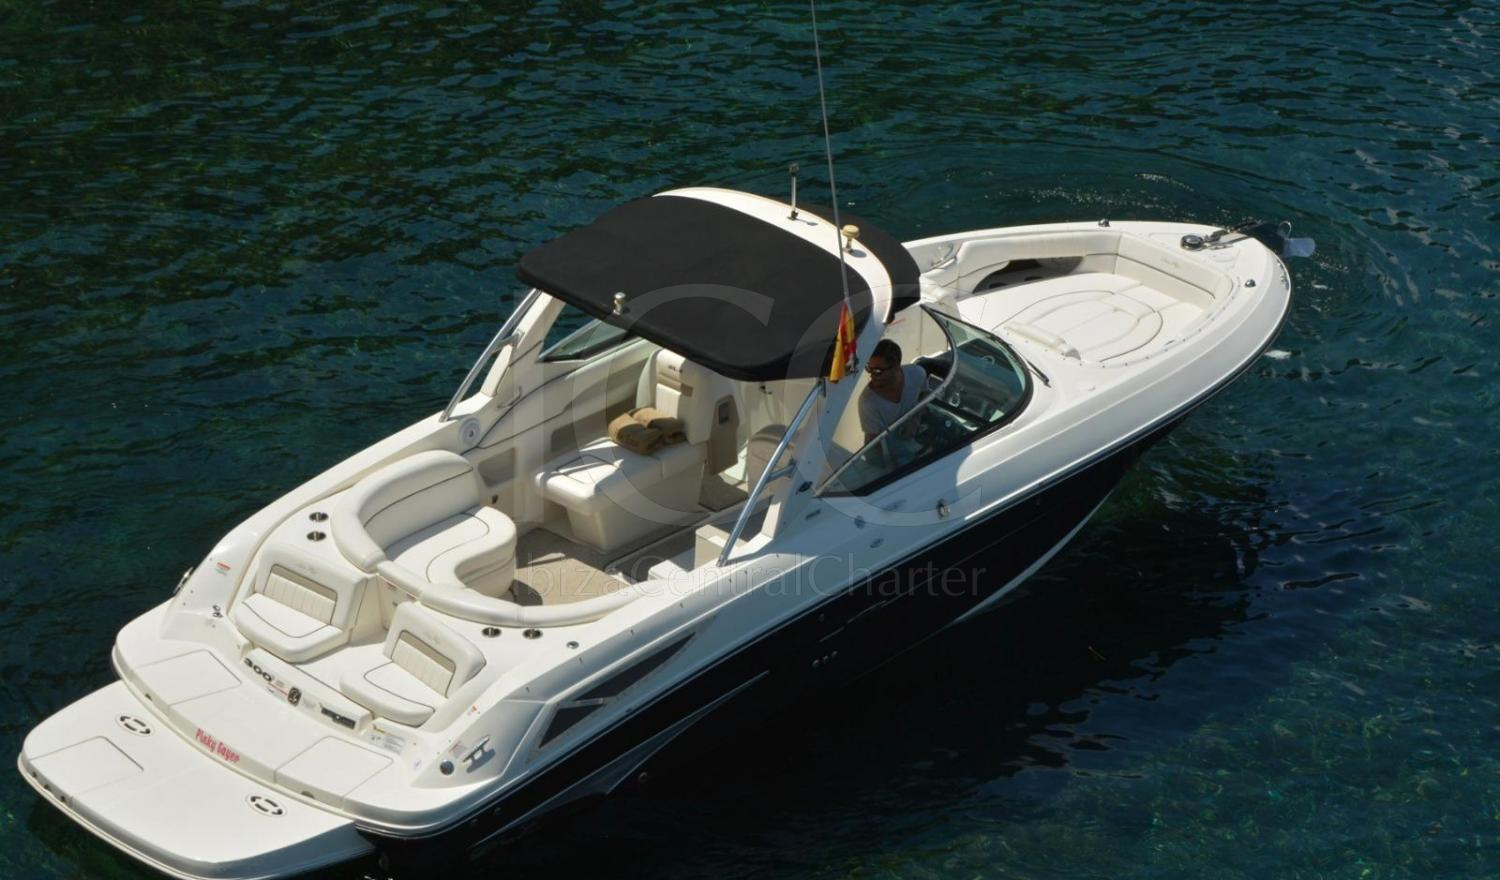 Motorboat Sea Ray 300 of 10 meters located in Marina Botafoch